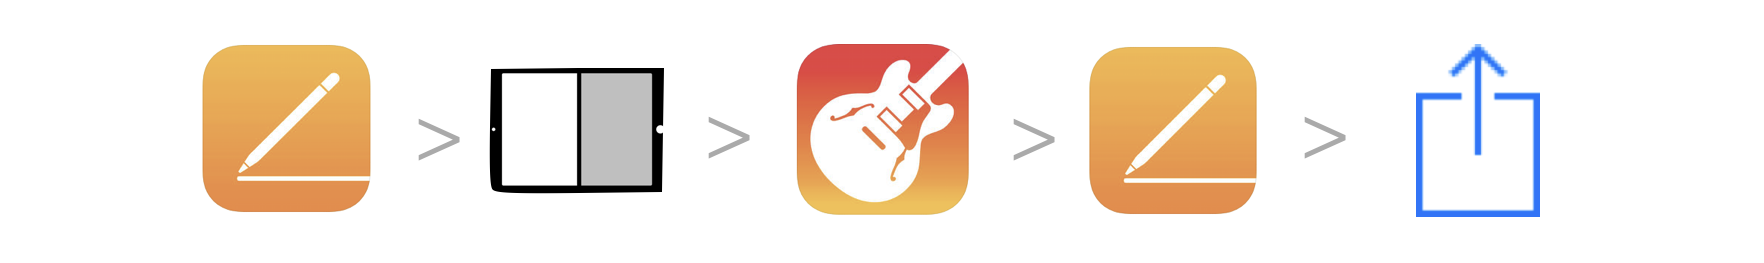 pages, split screen, garageband, pages, share arrow